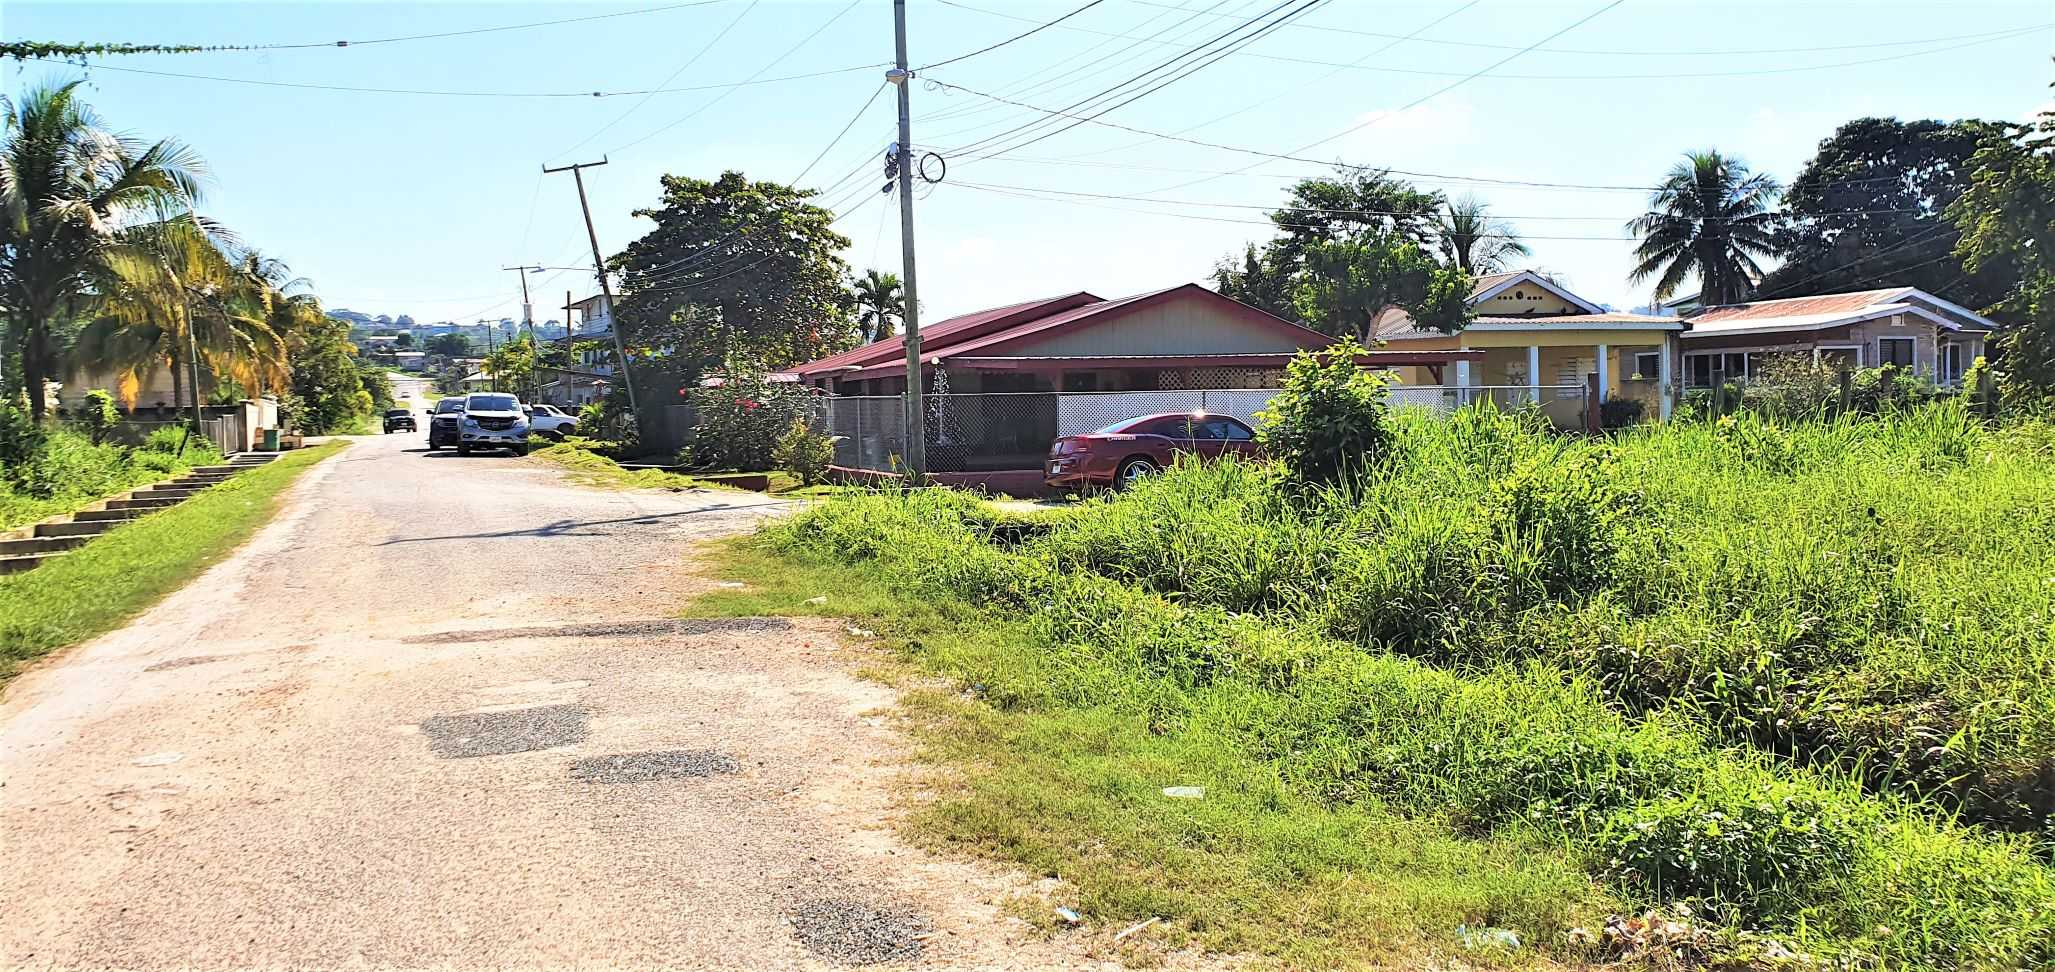 CY102: UNAVAILABLE! Corner Lot For Sale in San Ignacio Town couple of blocks away from Bullett Tree Road, Cayo District!